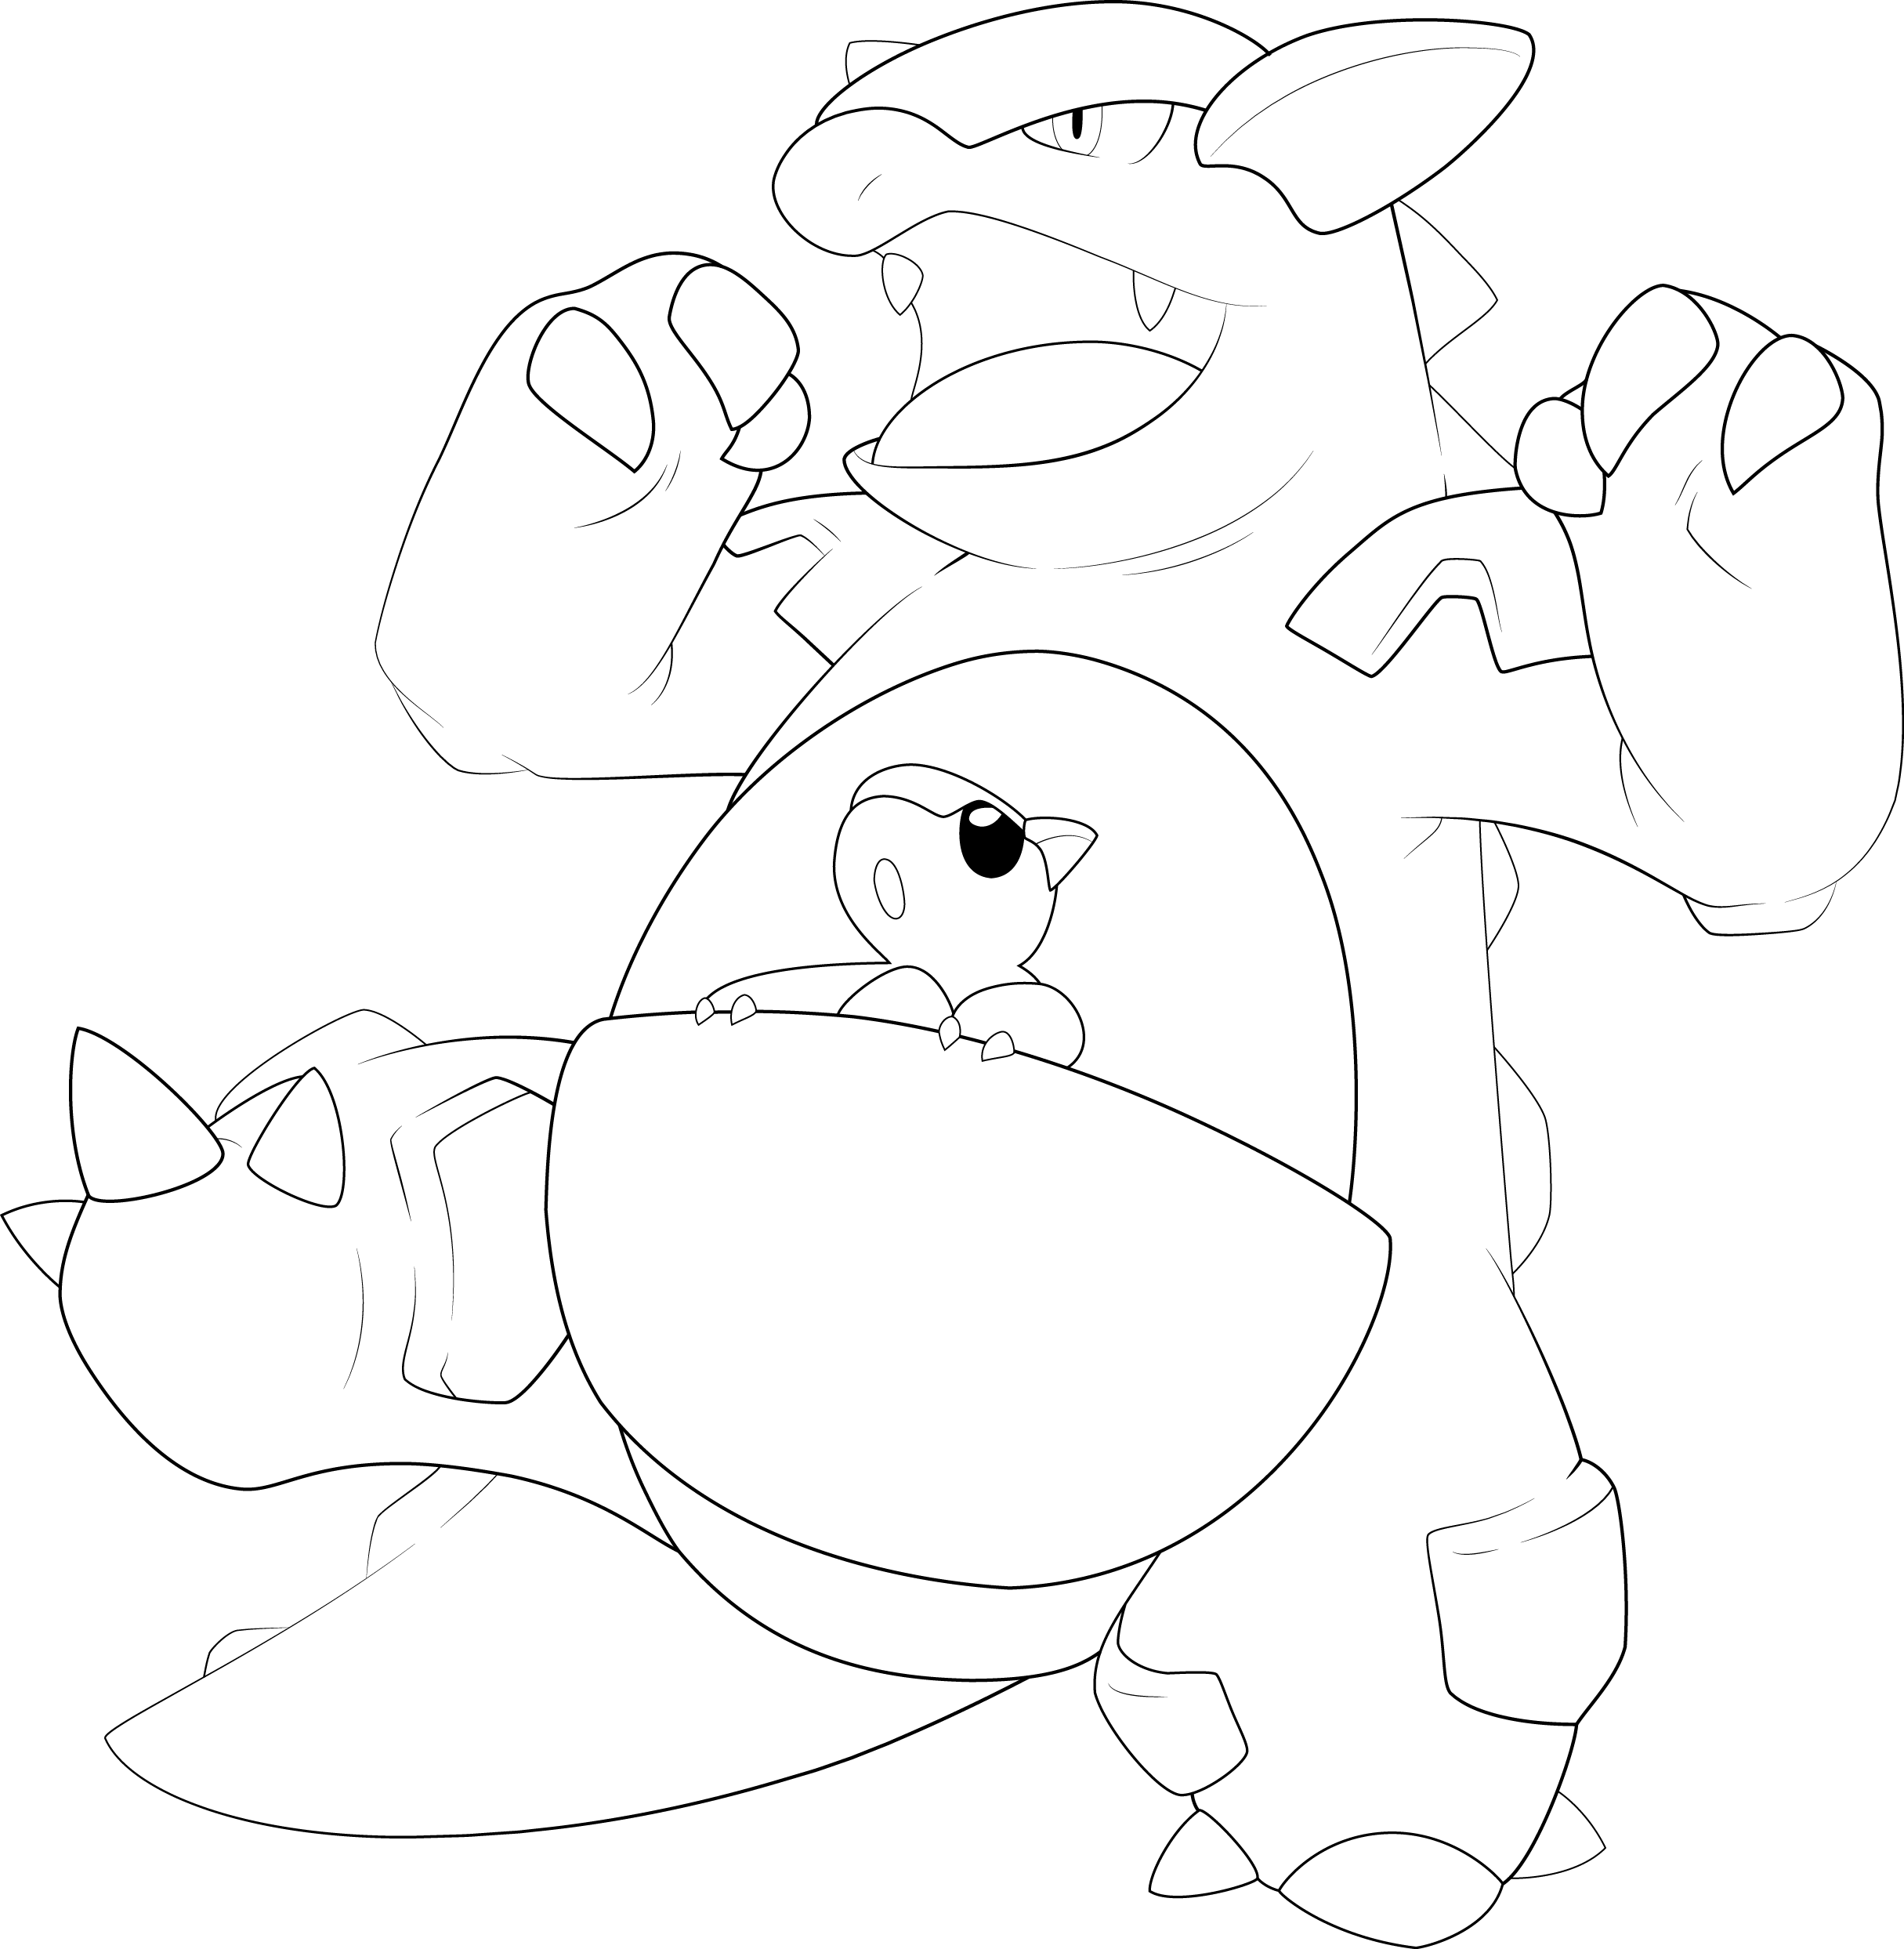 Putty Line Drawing Q : Kangaskhan line art by alcadeas on deviantart